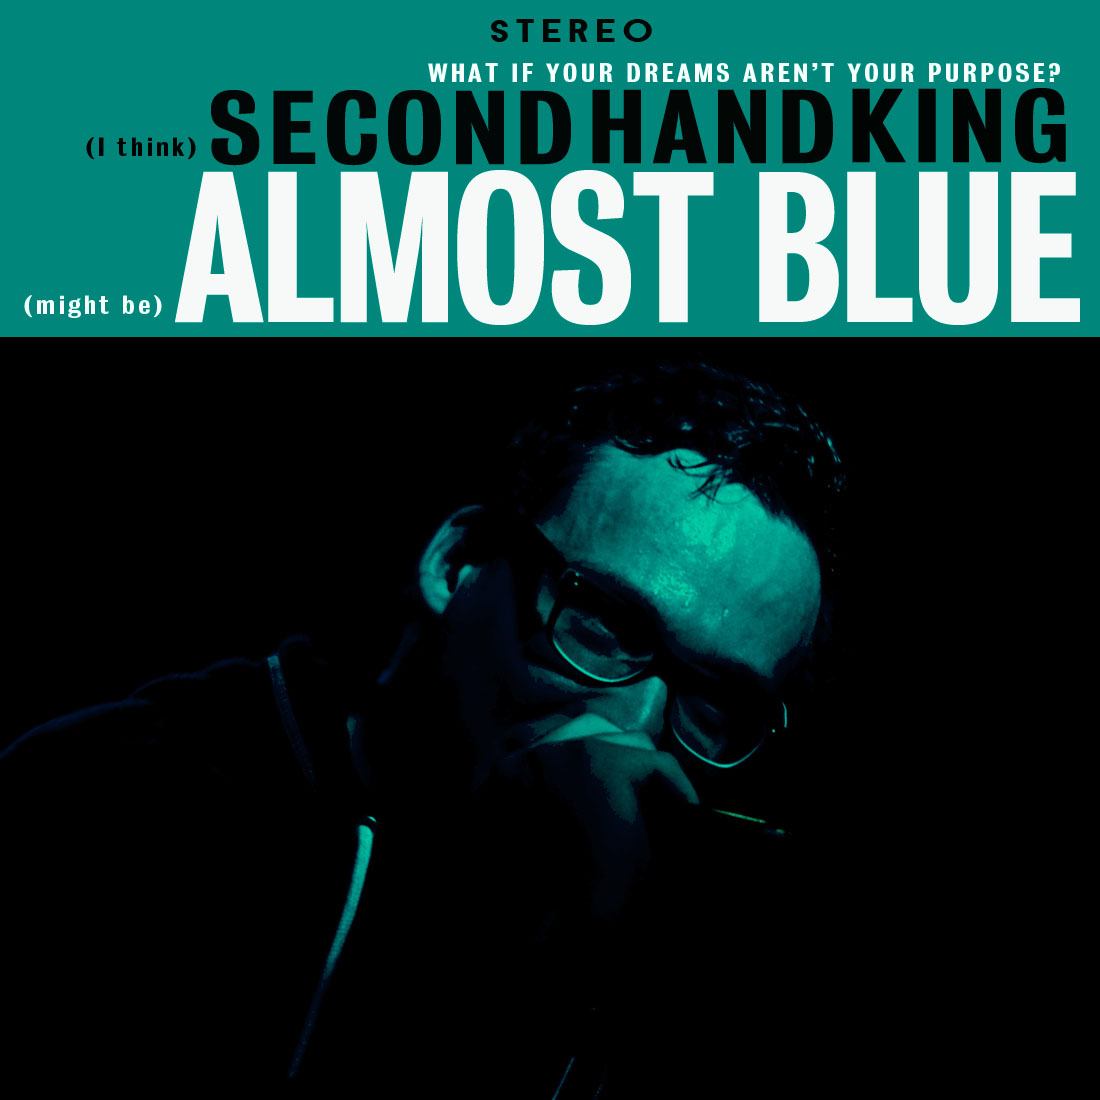 Almost Blue (Full Length)   The story of a jazz singer lost in some variation of success & love.